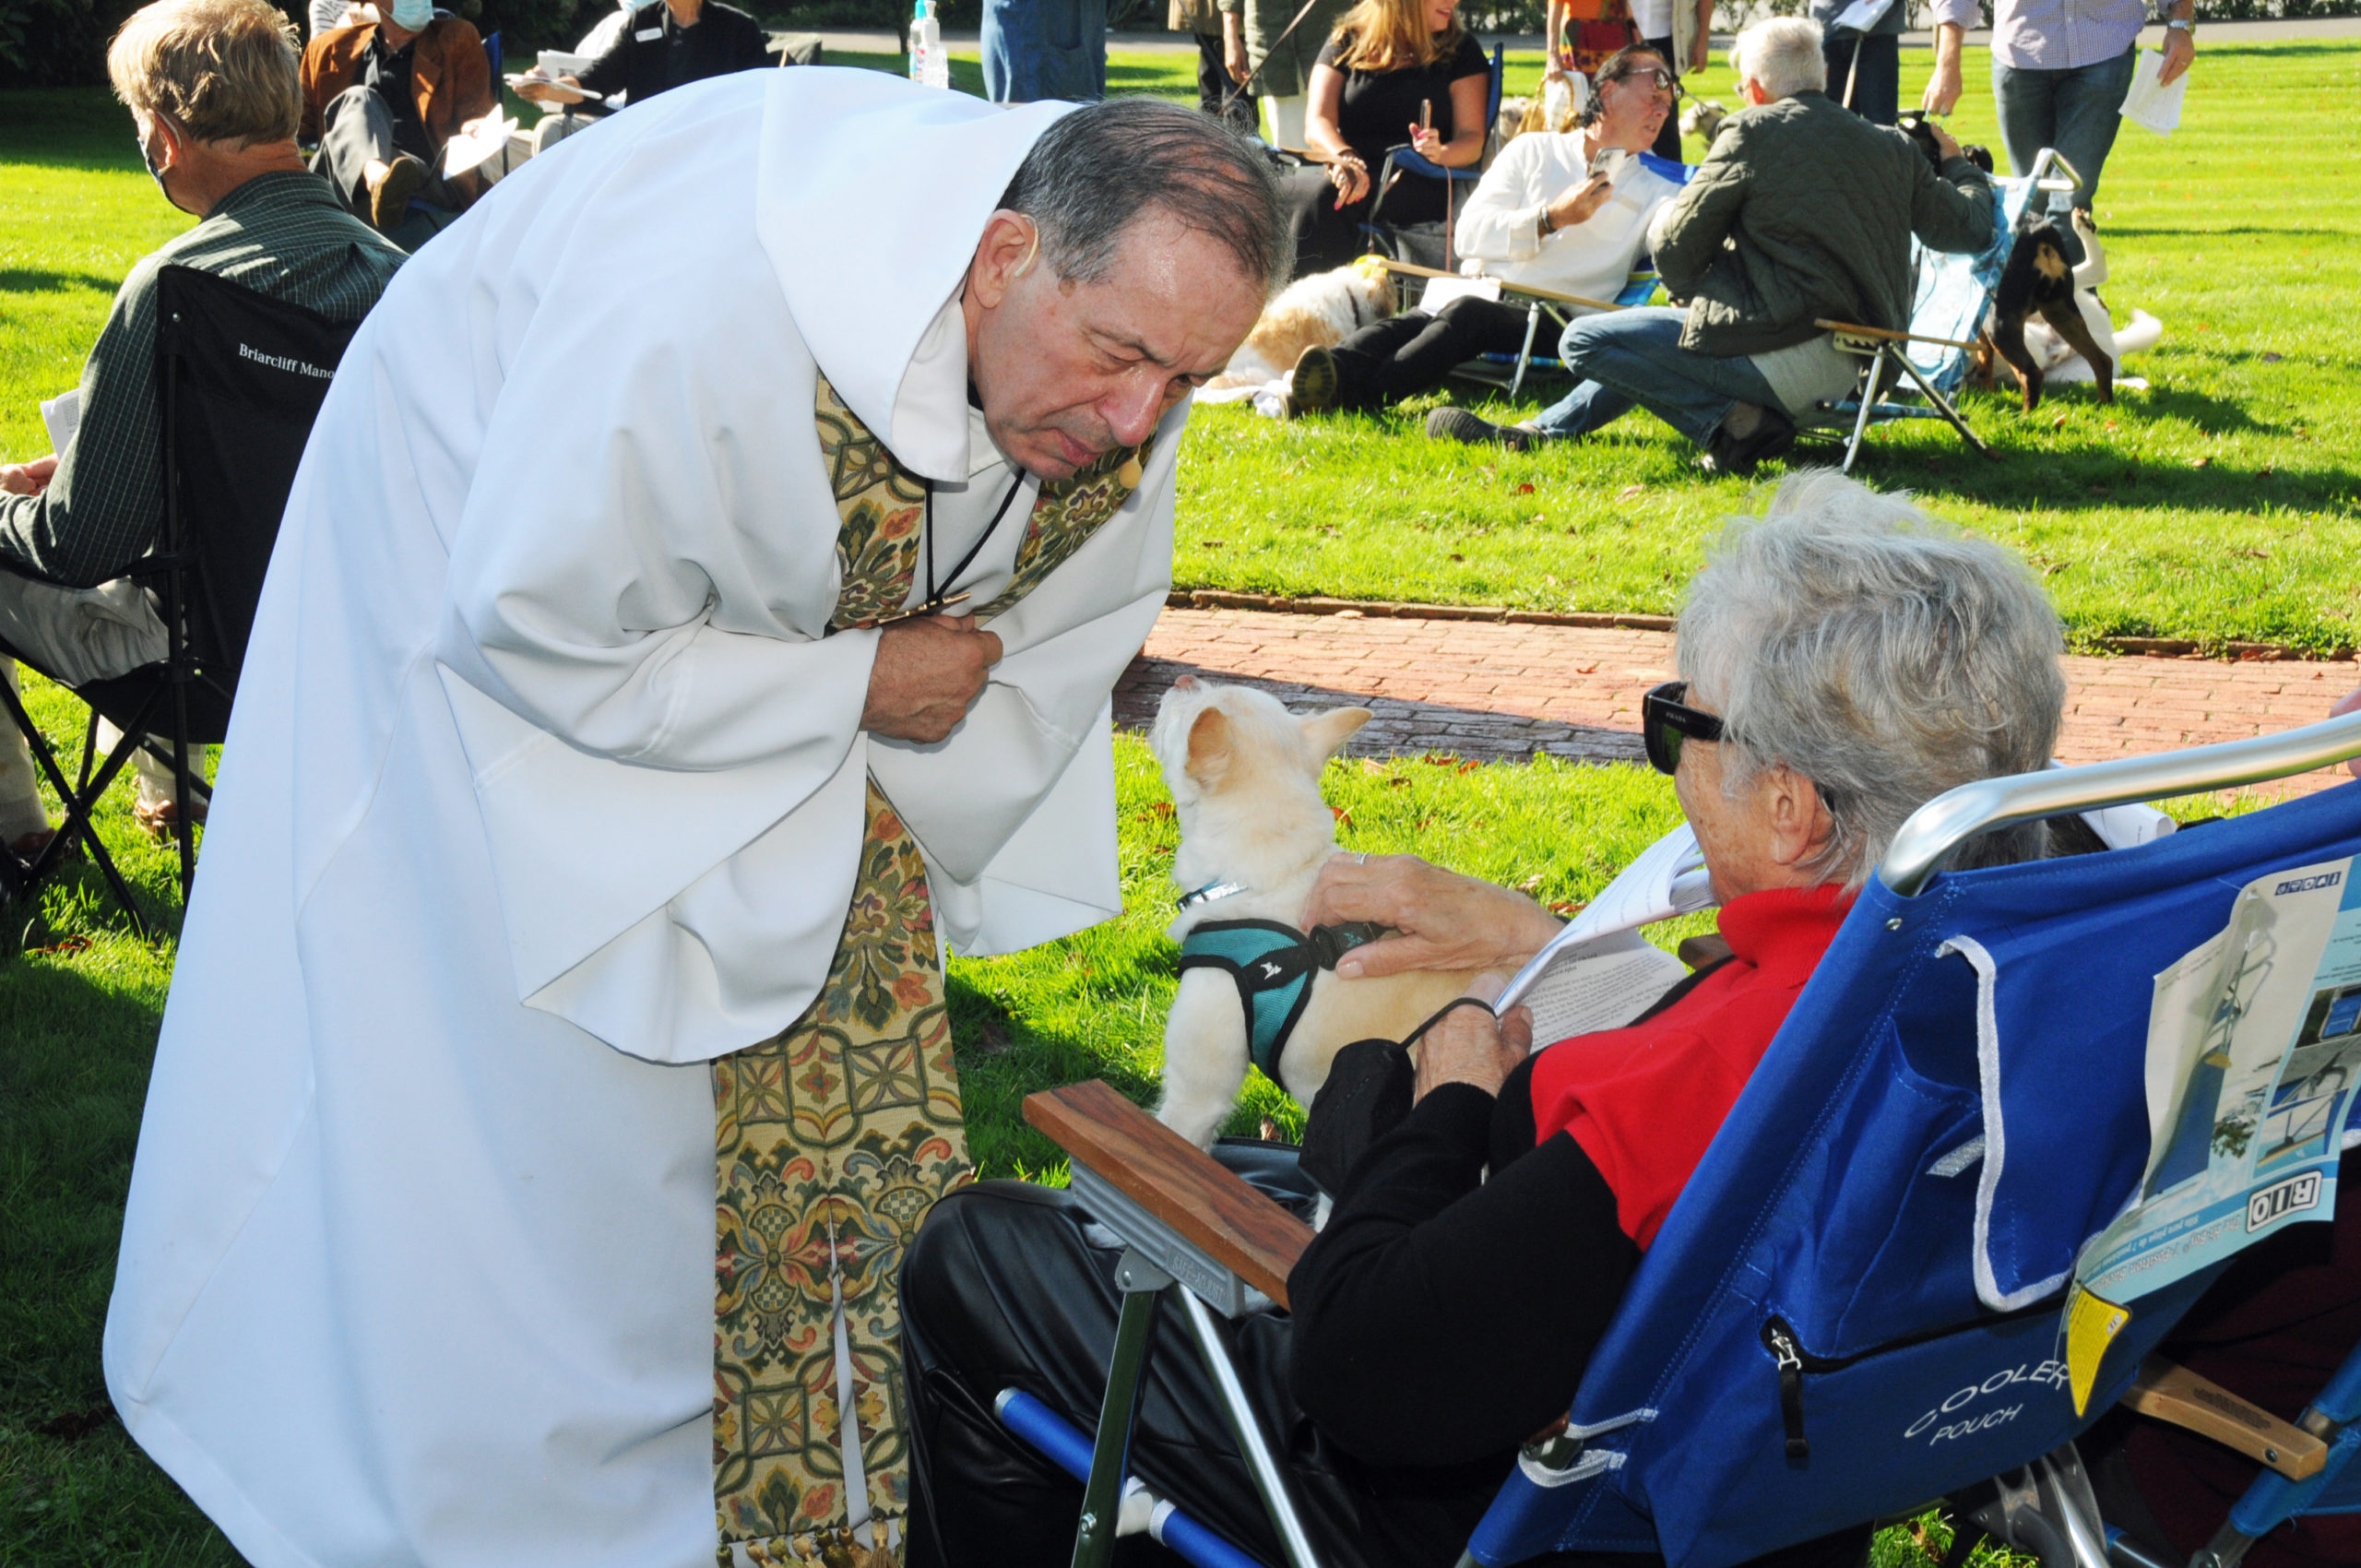 Pet owners are blessed every day by having the company of their beloved companions. On Sunday it was their turn to be blessed, as St. Luke's Episcopal Church in East Hampton held the annual